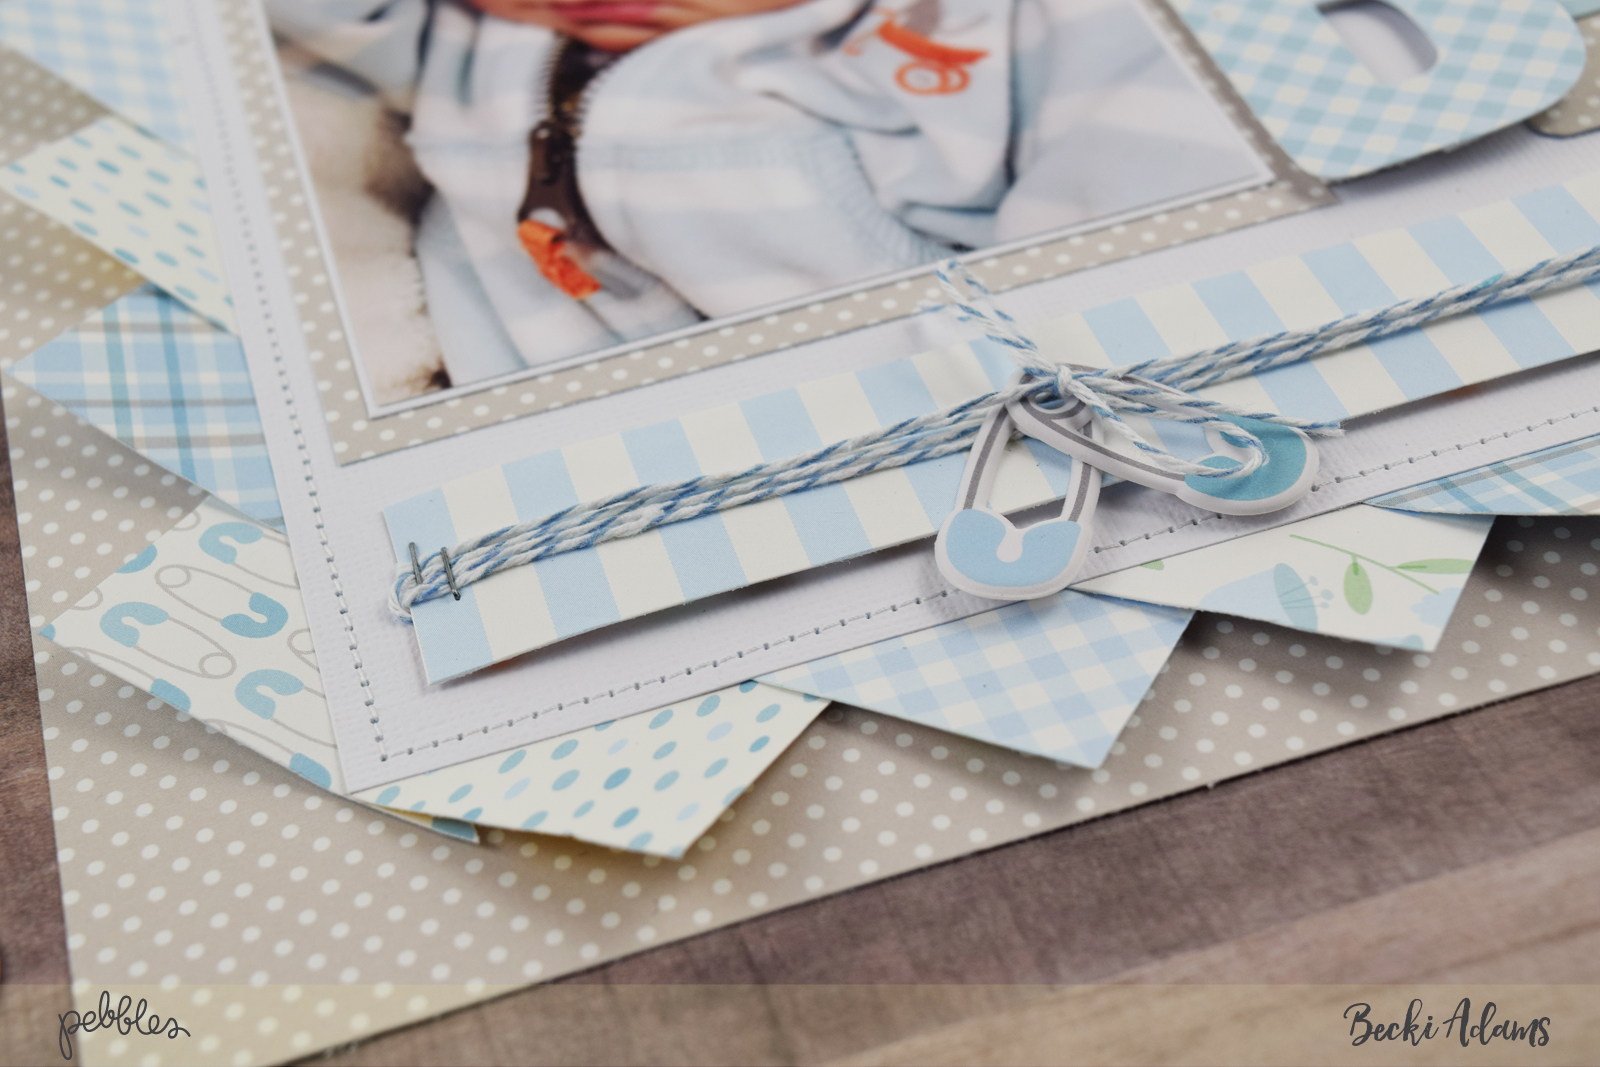 Lullaby Baby Boy by @jbckadams for @pebblesinc #madewithpebbles #scrapbooking #memorykeeping